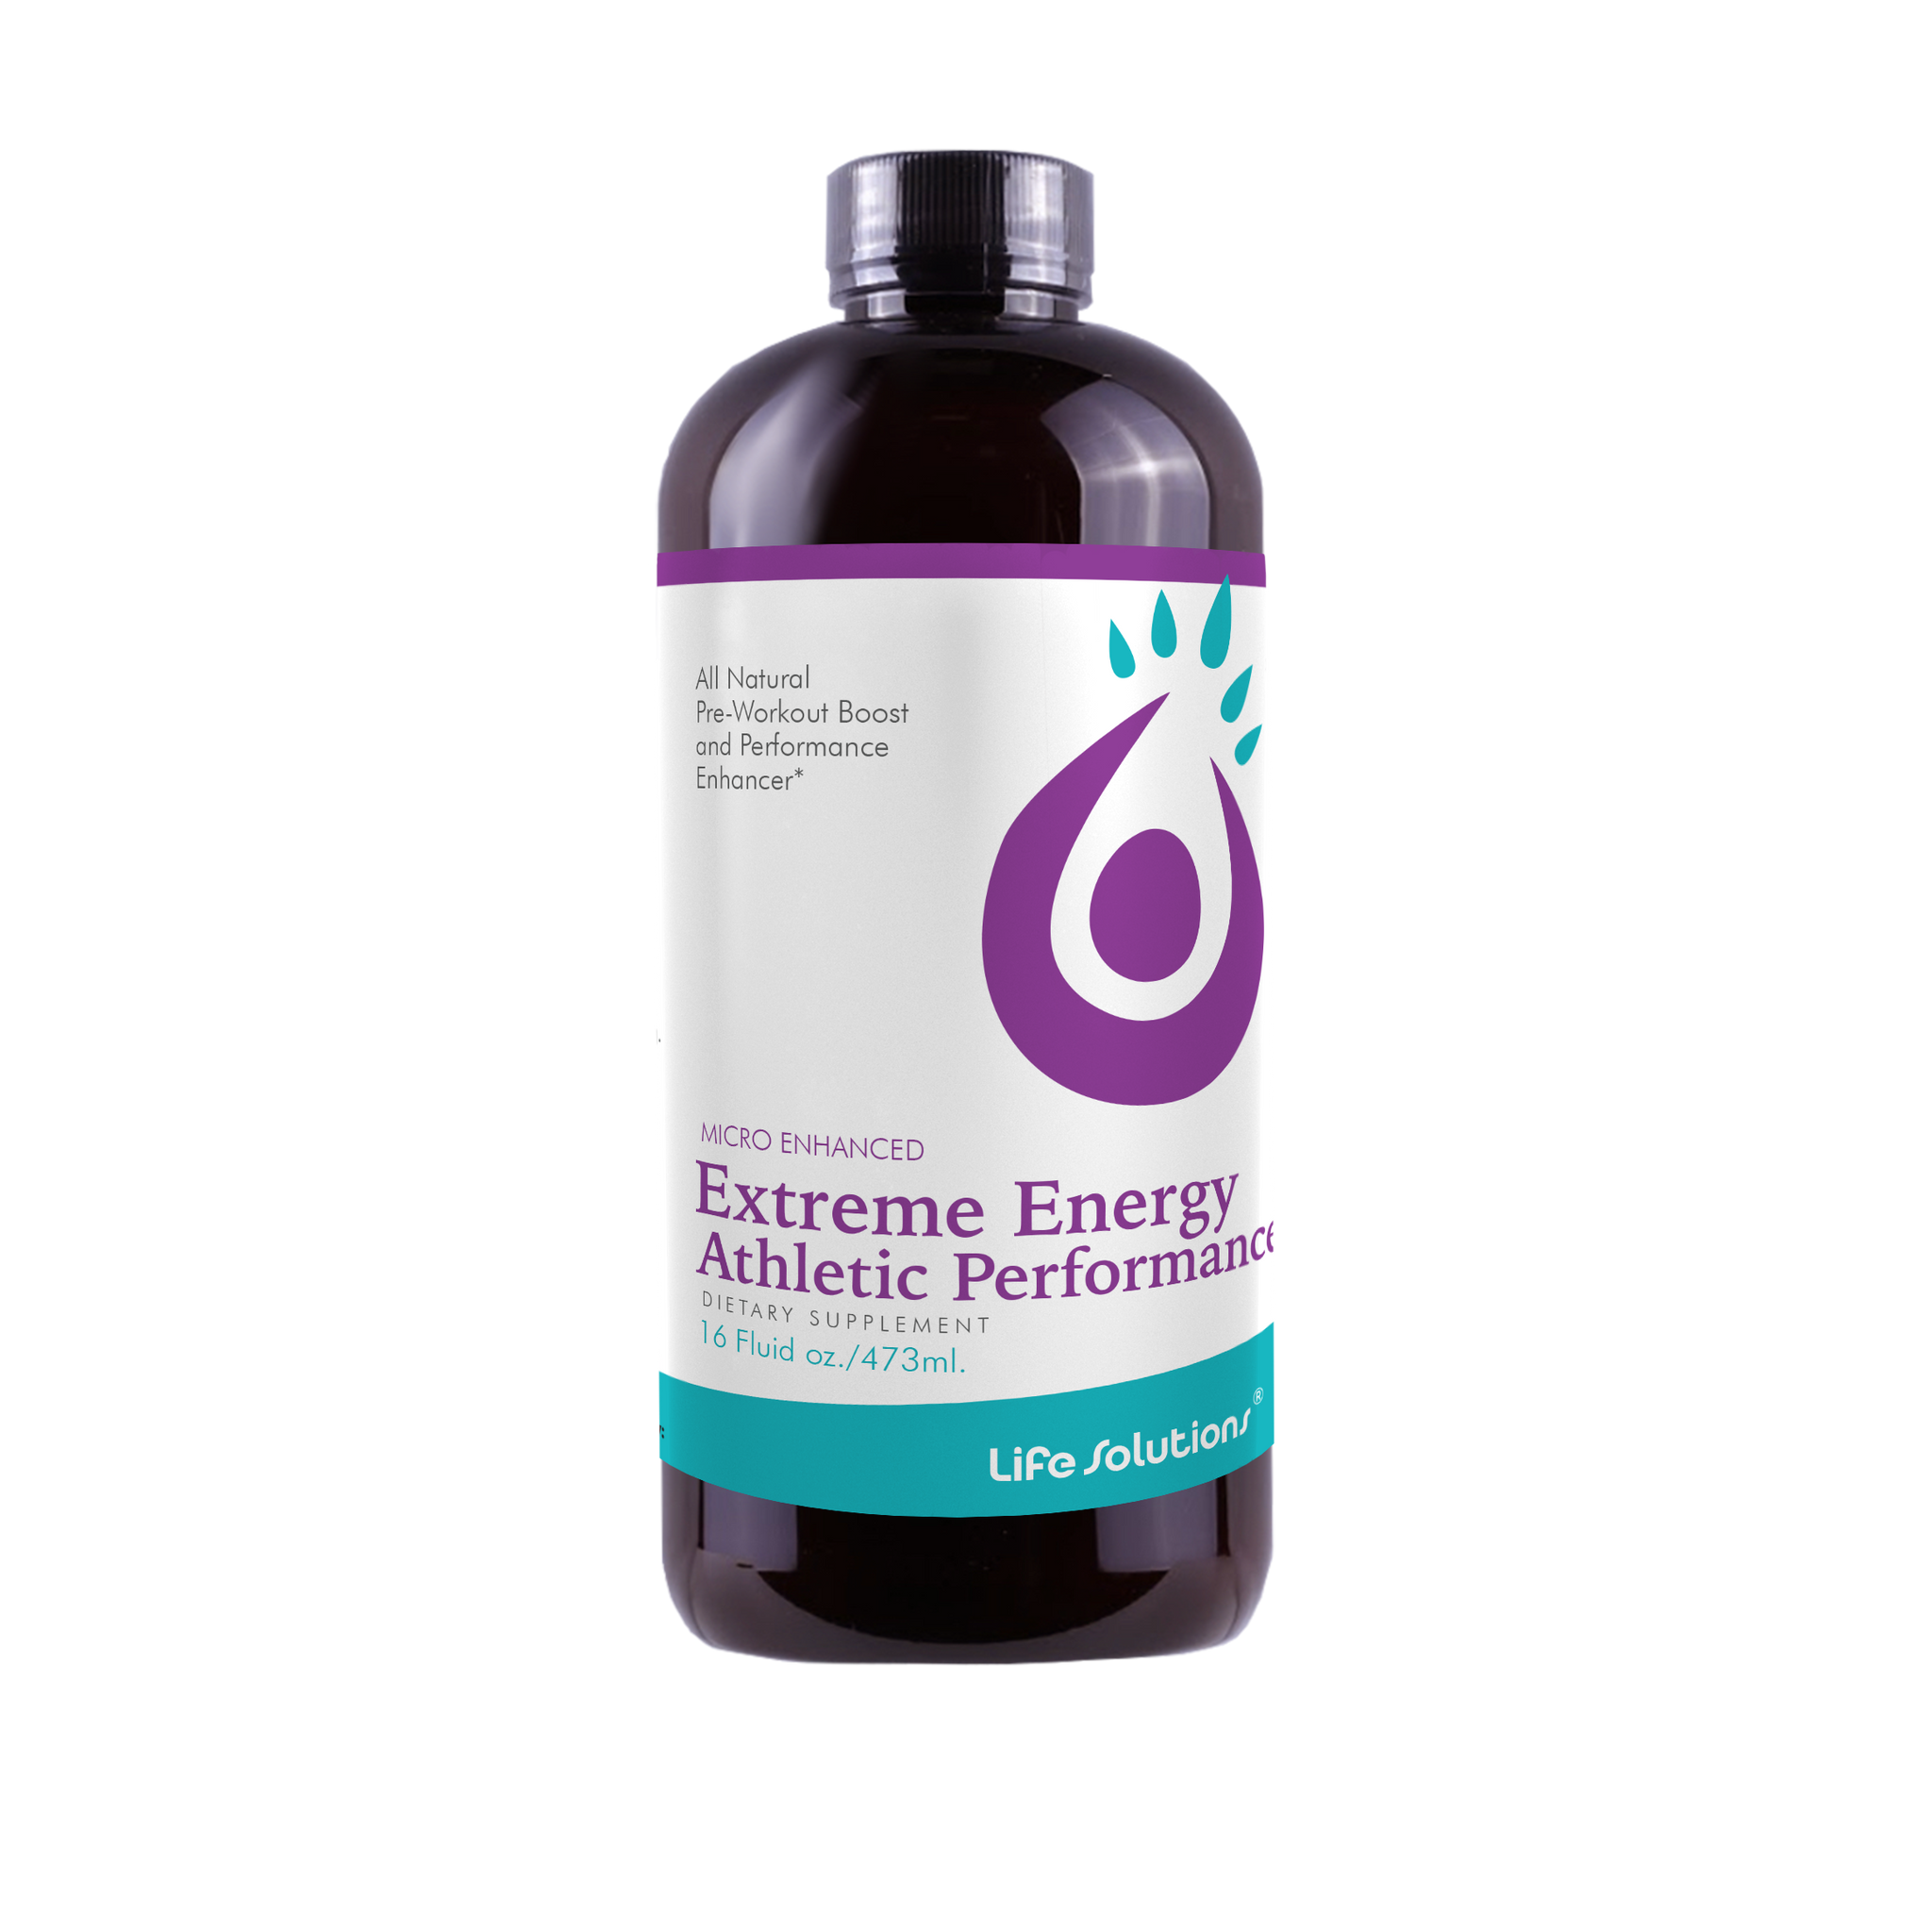 Extreme Energy Athletic Performance